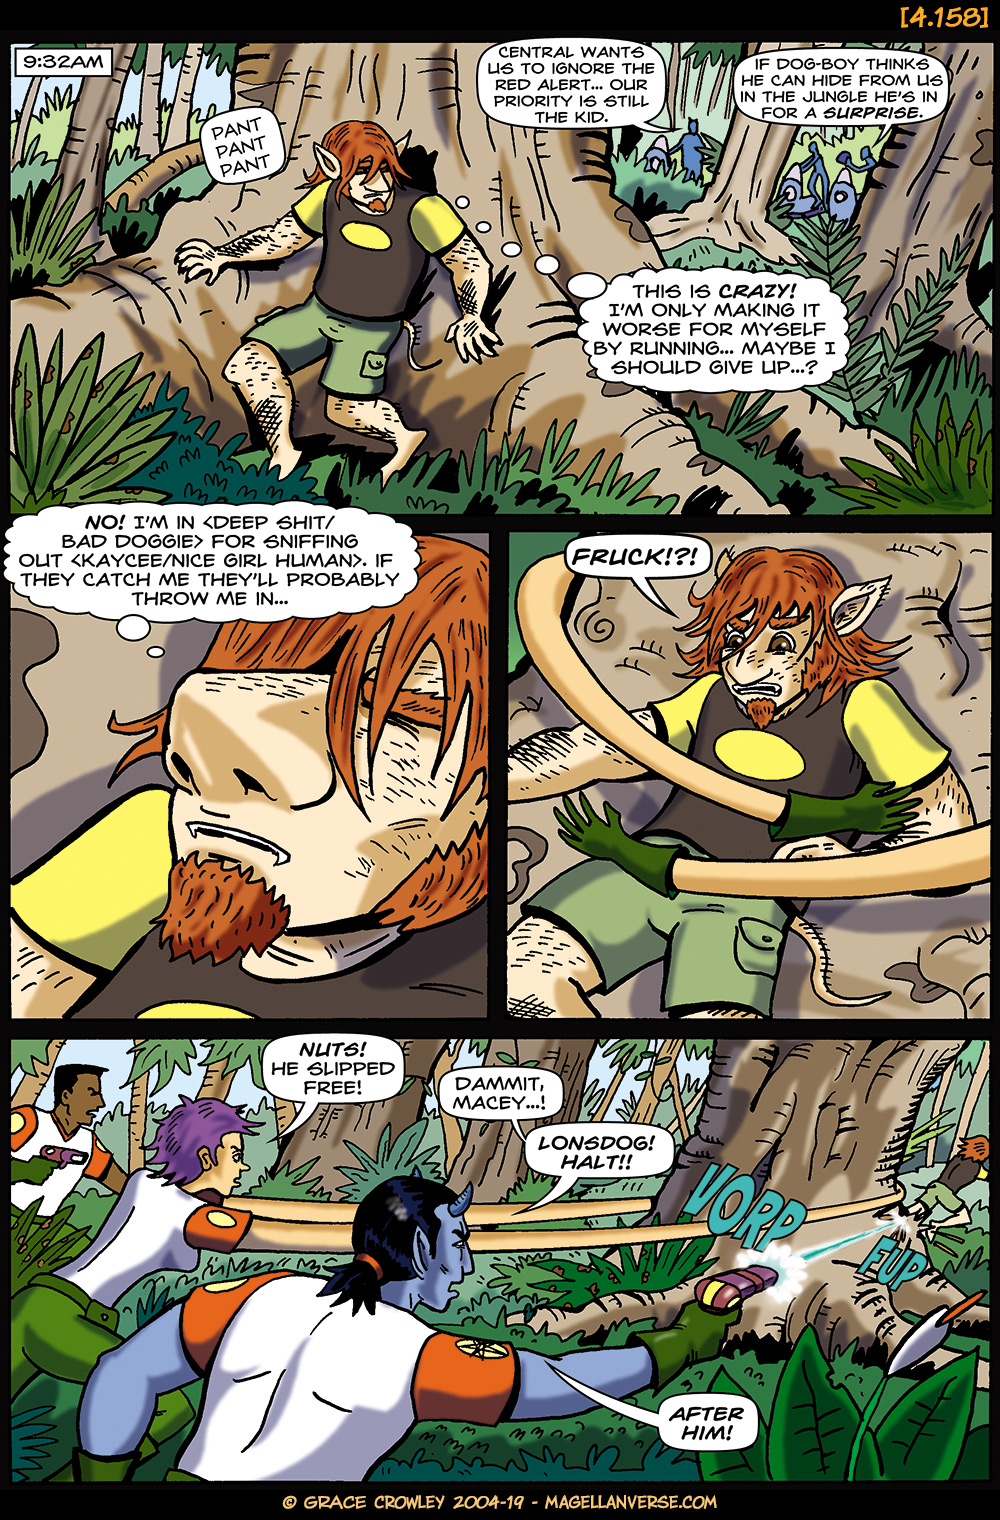 Page 4.158